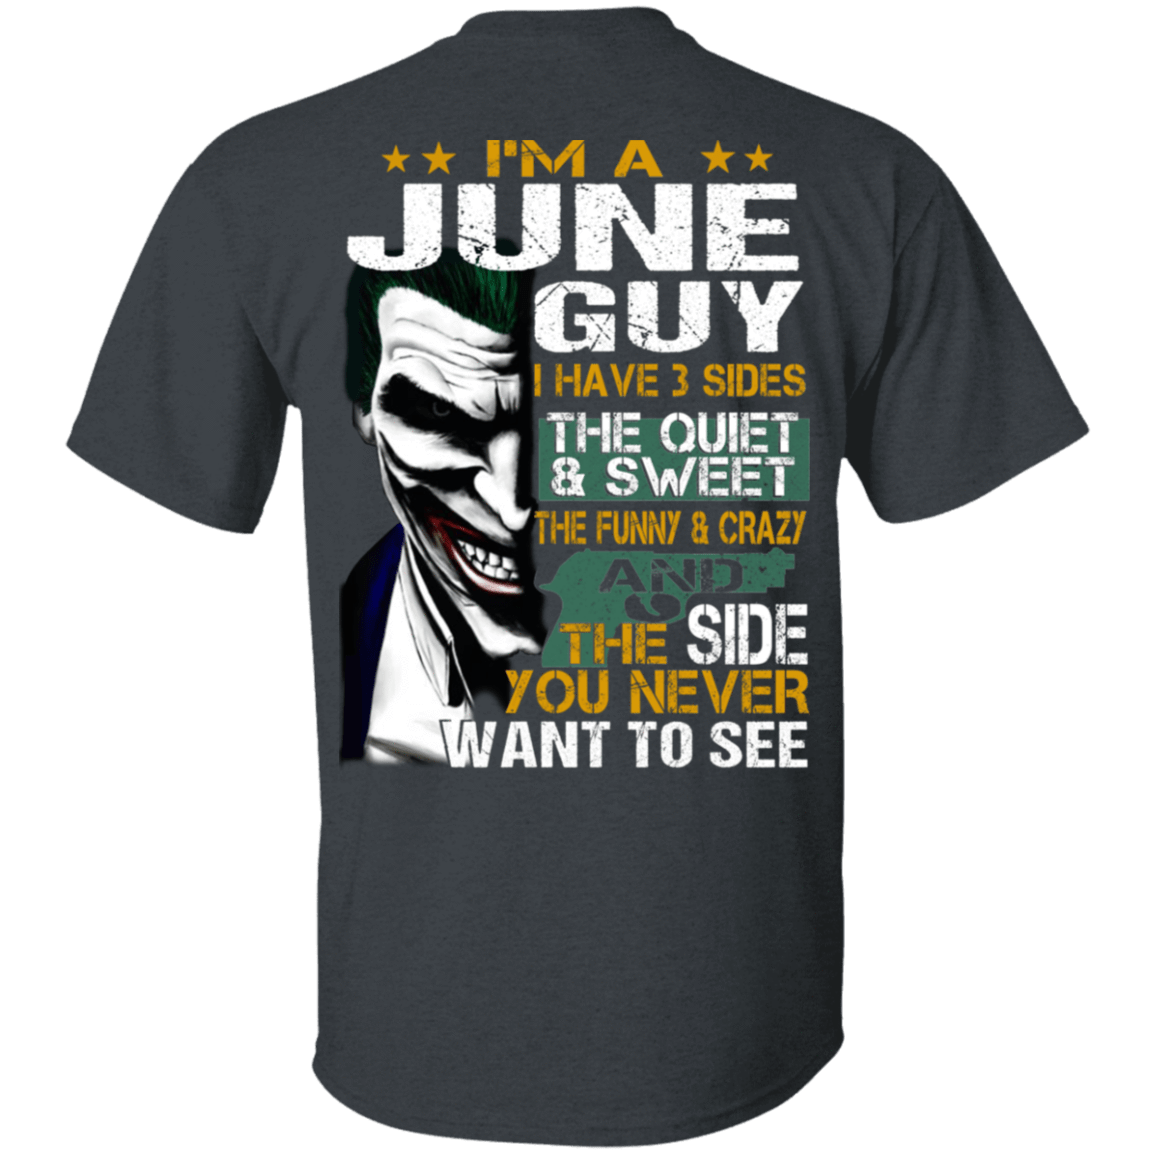 Joker June Guy Have 3 Sides The Quiet And Sweet T-Shirts, Hoodies 1049-9957-81647610-48192 - Tee Ript